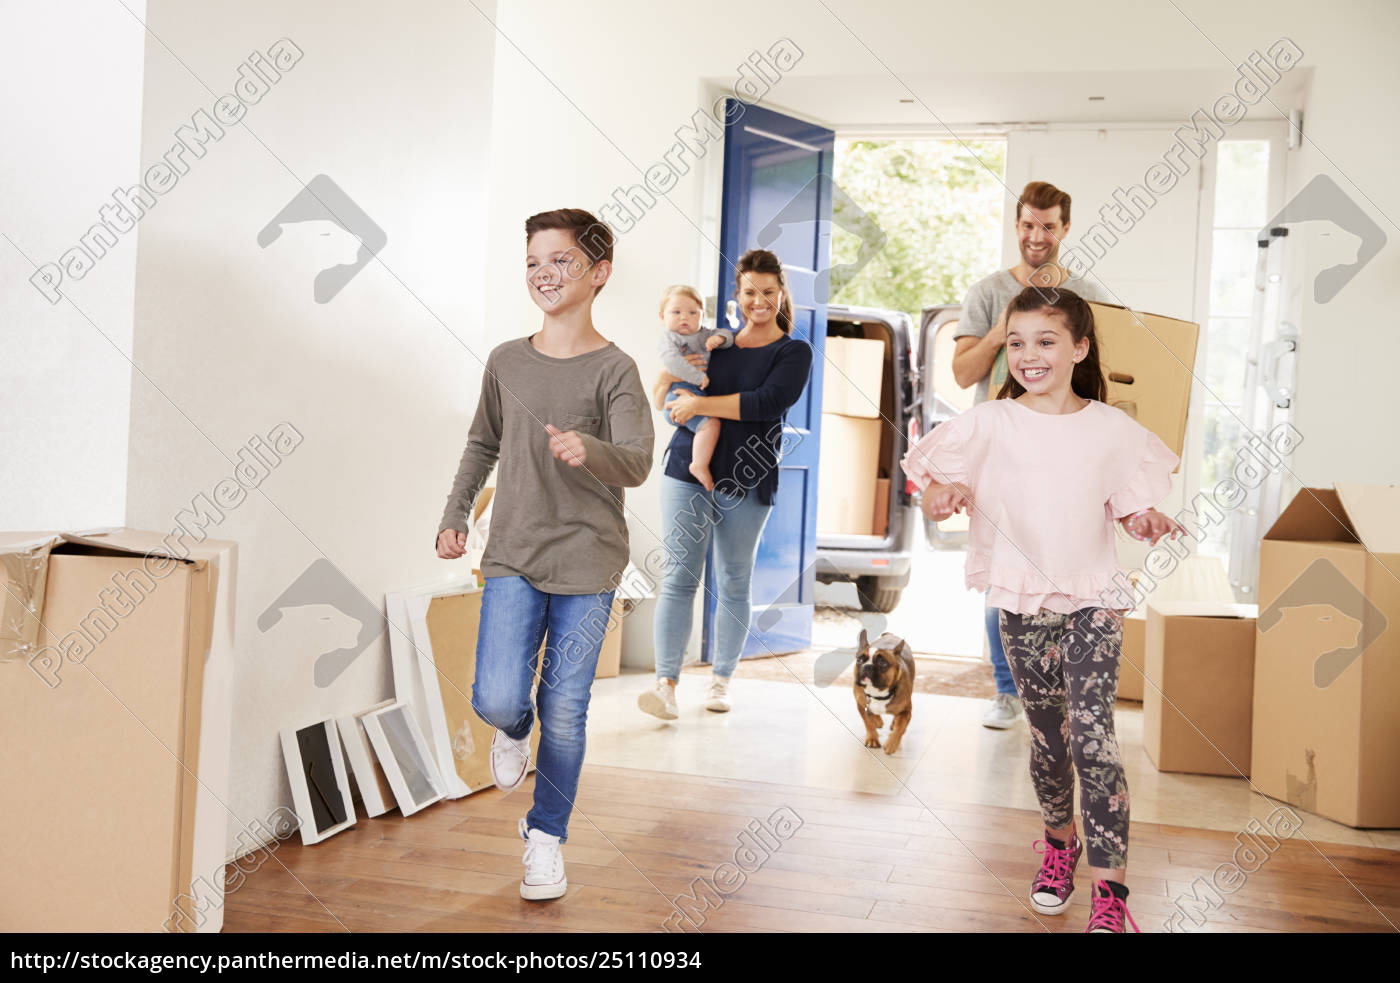 family, carrying, boxes, into, new, home - 25110934